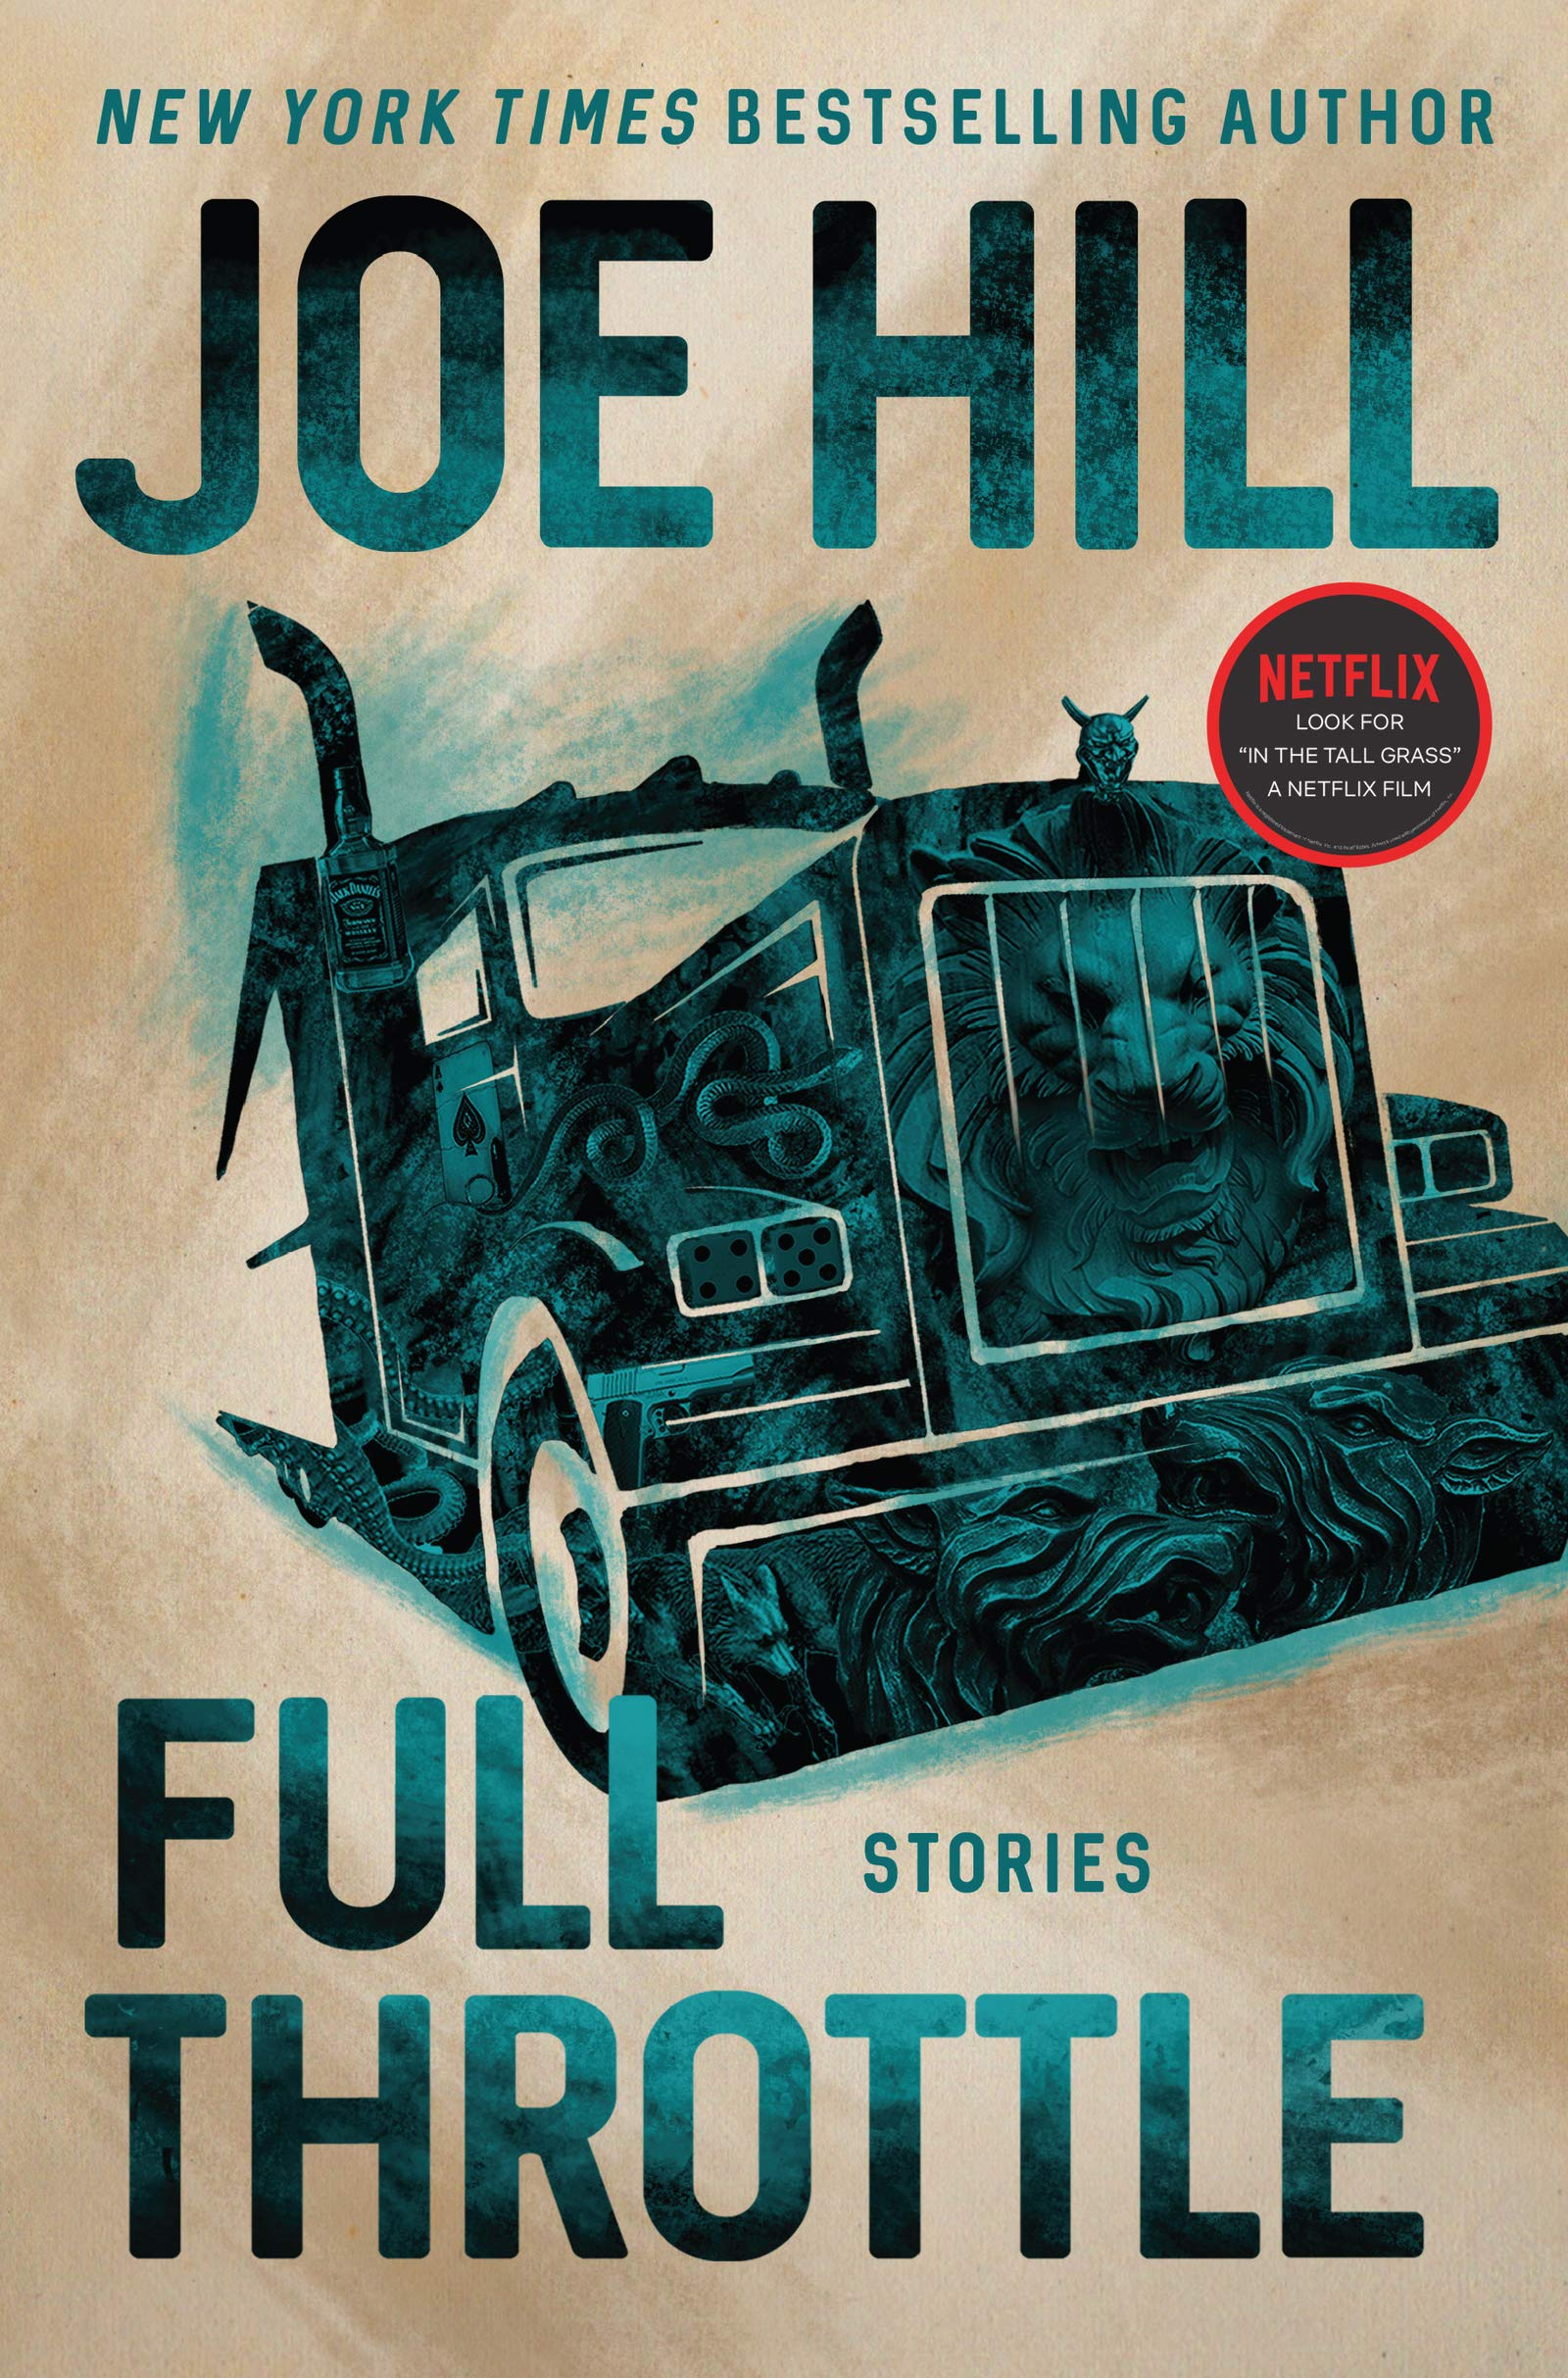 Image result for full throttle book cover